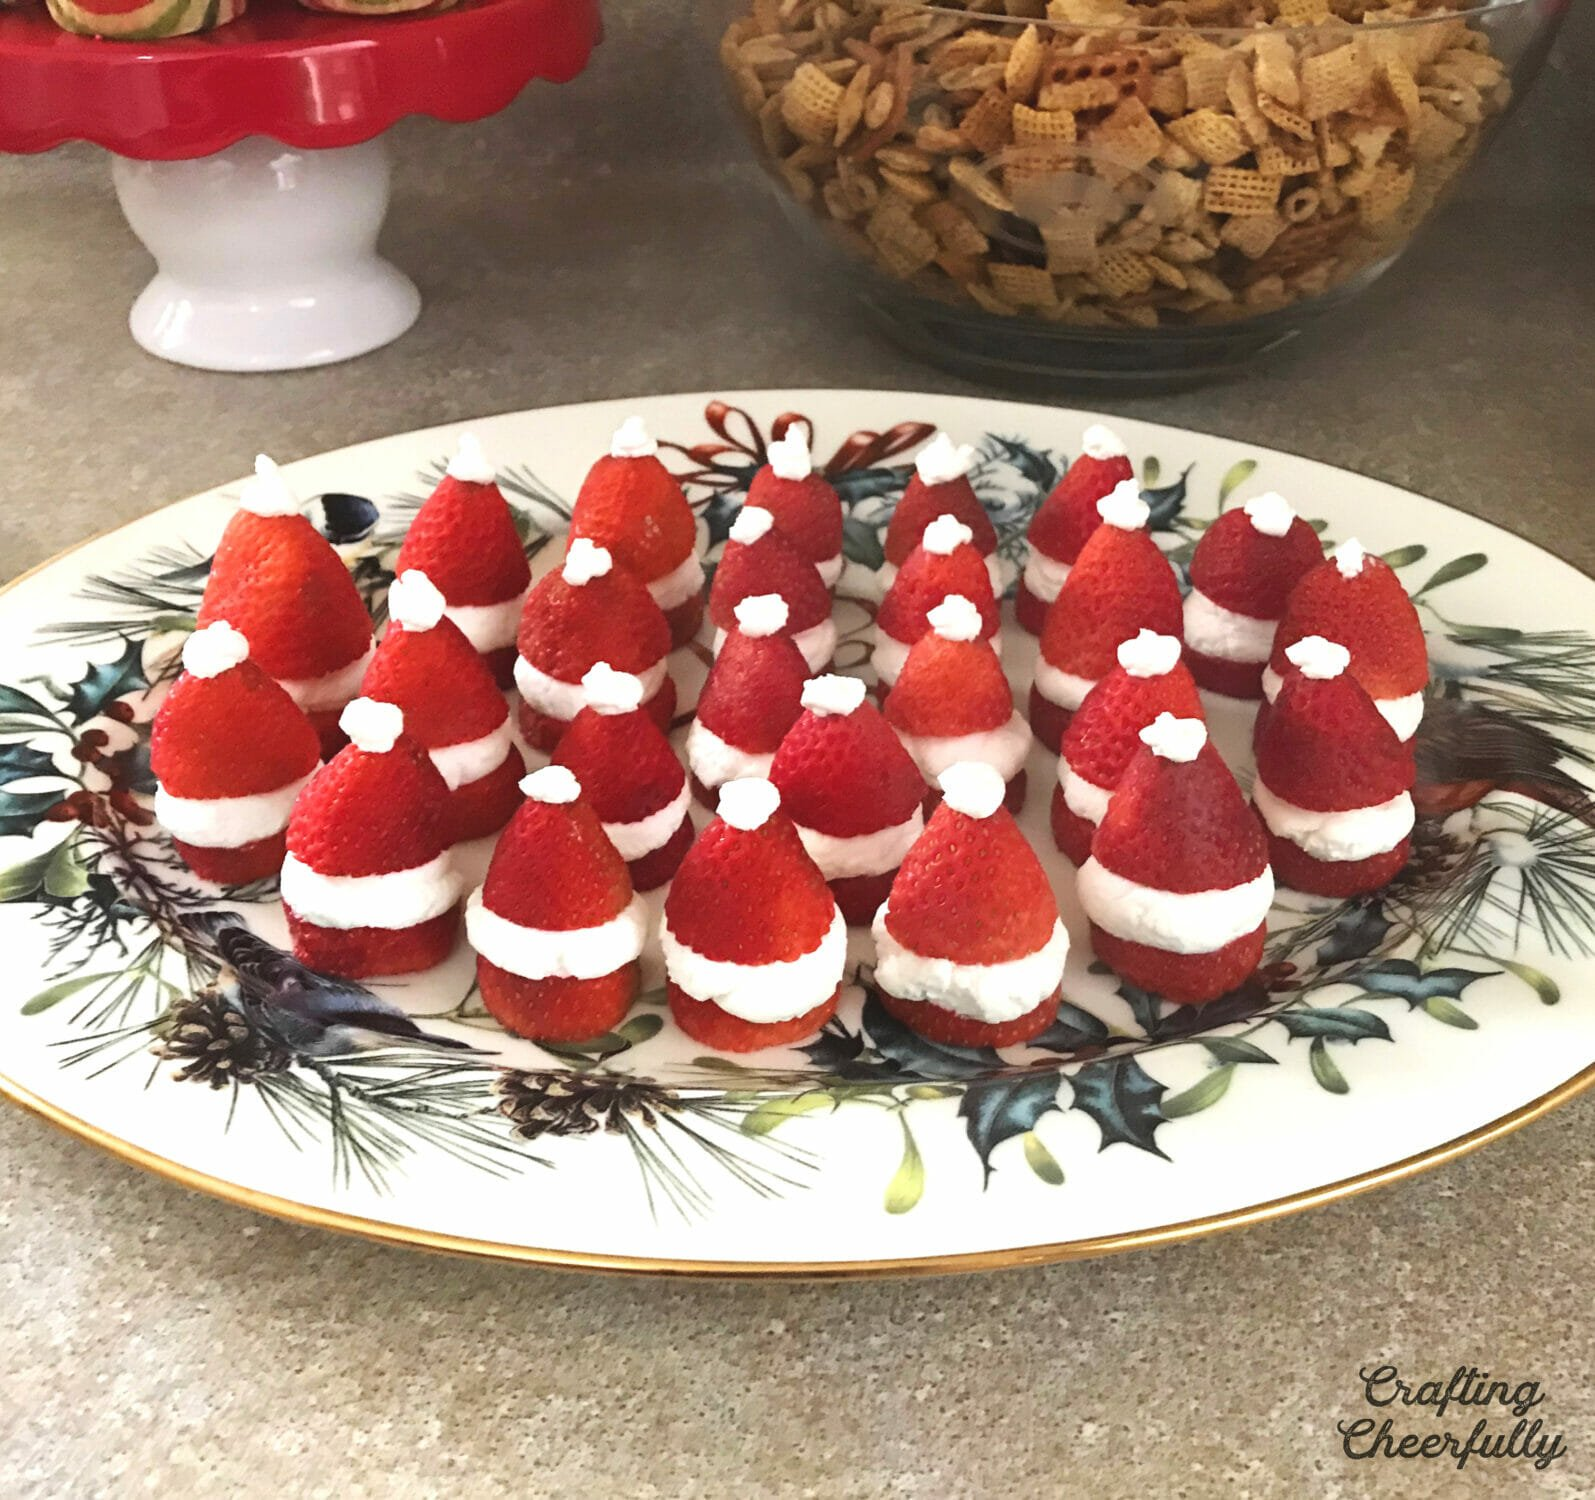 Strawberry santa hats made with strawberries and whip cream.